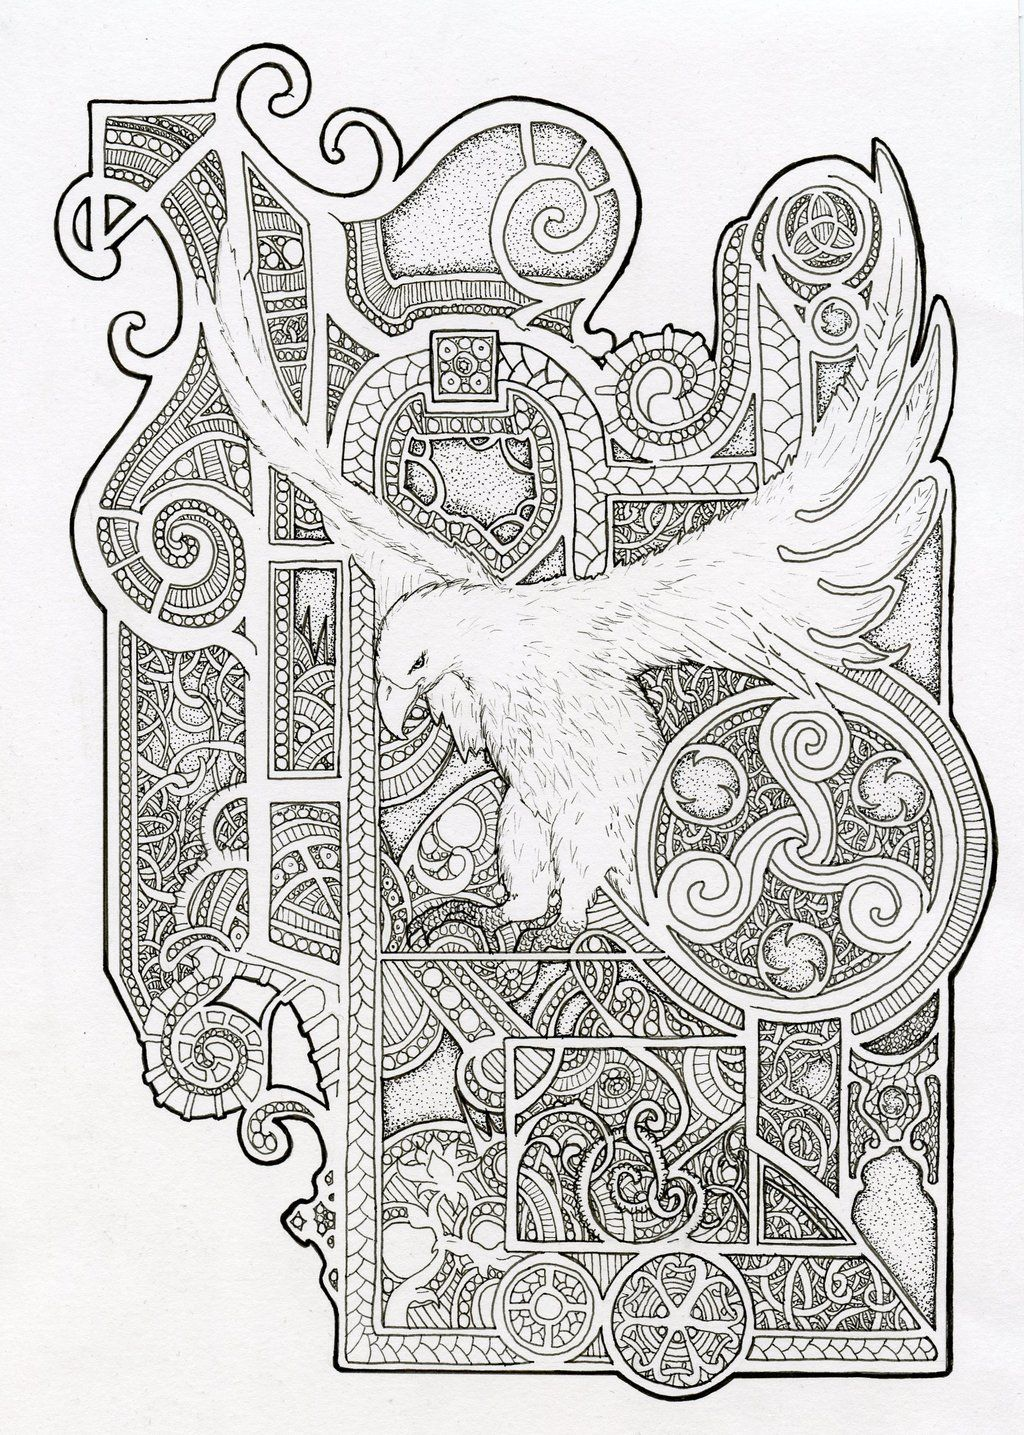 bird_design___inspired_by_book_of_kells_by_scream_stay_night-d61syoz ...